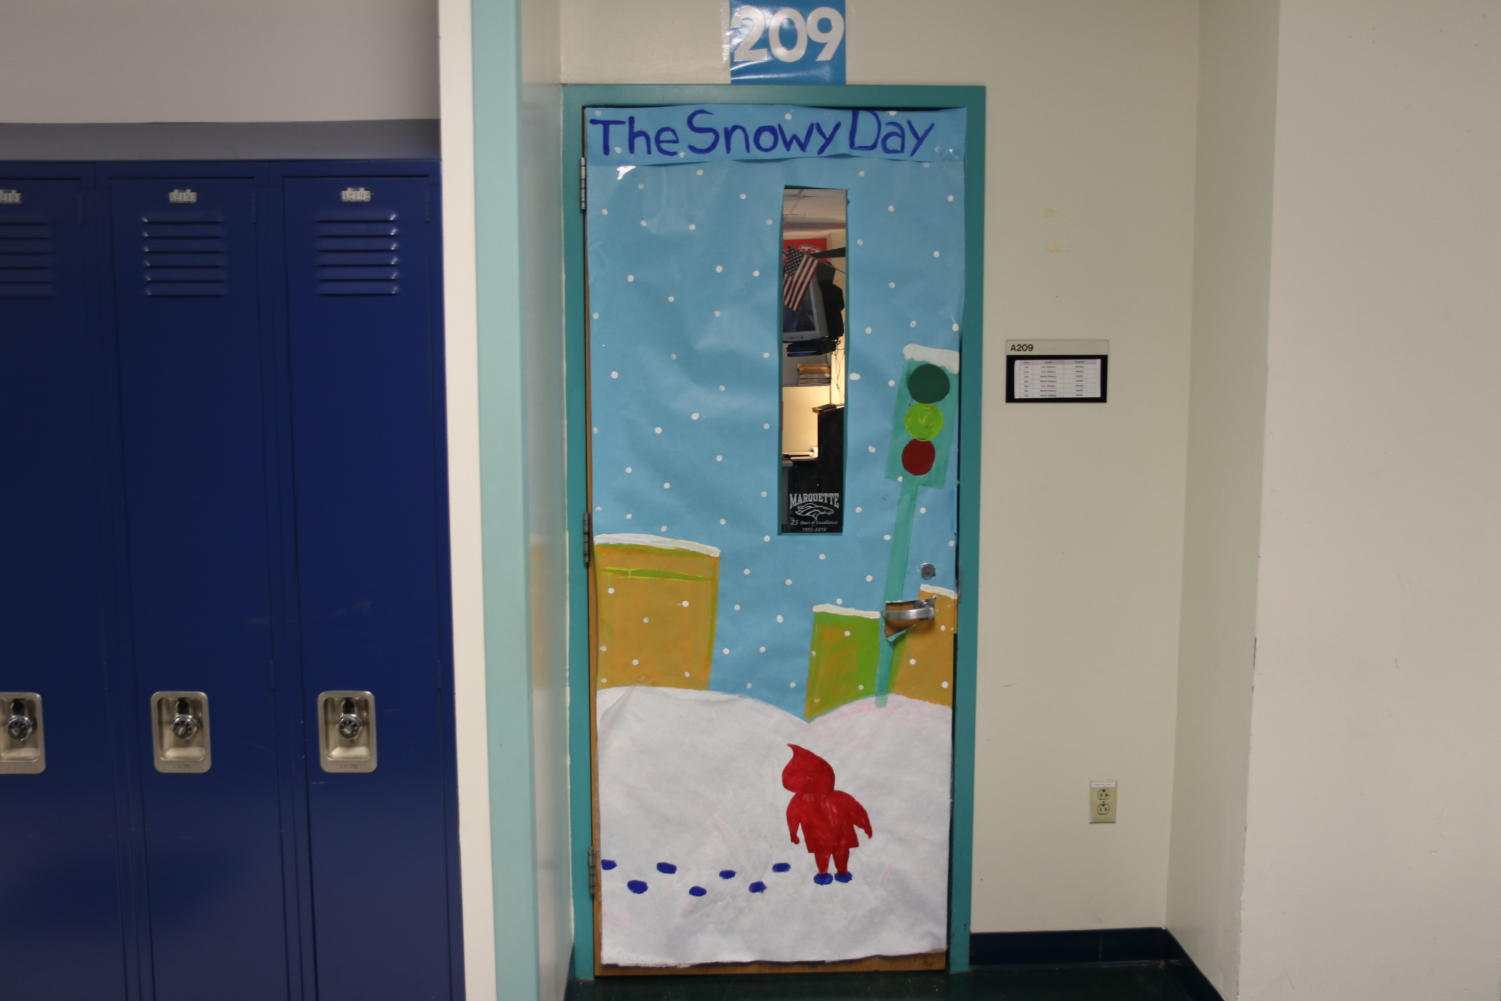 Luke+Gentry%2C+social+studies+teacher%2C+had+his+door%2C+Room+209%2C+decorated+based+on+a+classic+book+%E2%80%9CThe+Snowy+Day%E2%80%9D+written+by+Ezra+Jack+Keats.+The+children%E2%80%99s+book%2C+published+in+1962%2C+is+based+on+a+boy+experiencing+his+first+snow+of+the+season.